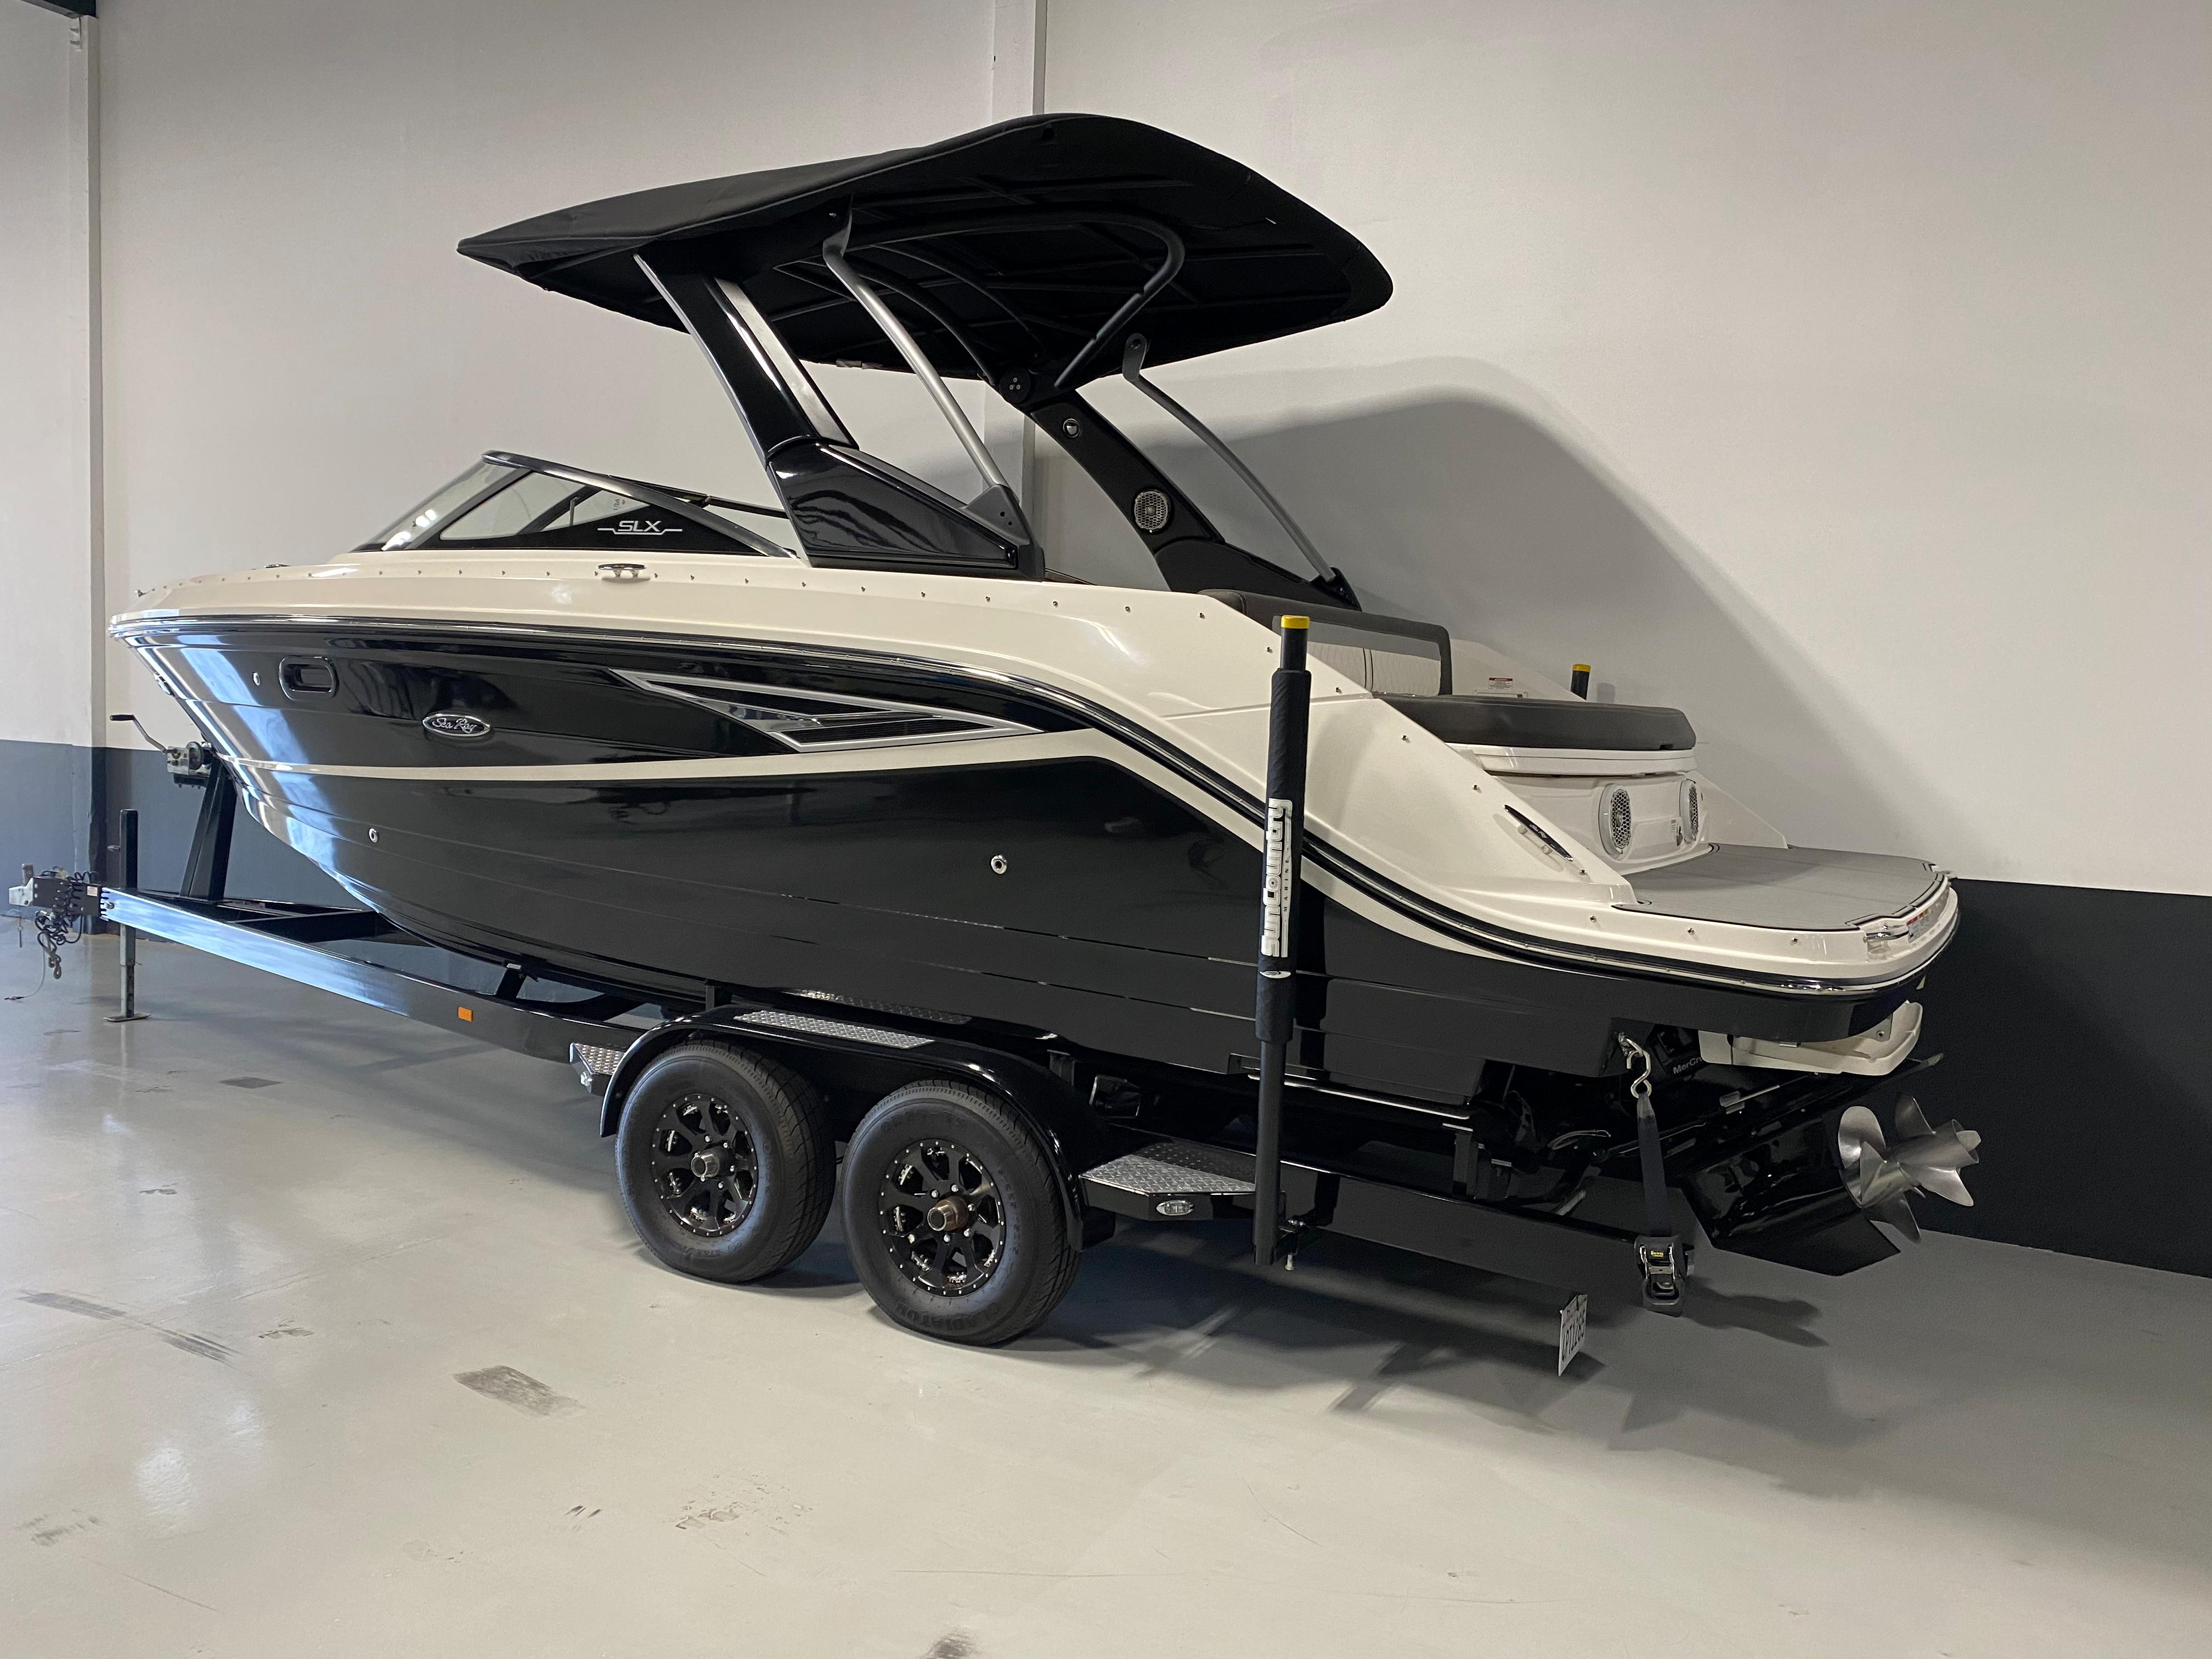 2017 Sea Ray SLX 250 #TB3018DW inventory image at Sun Country Inland in Irvine